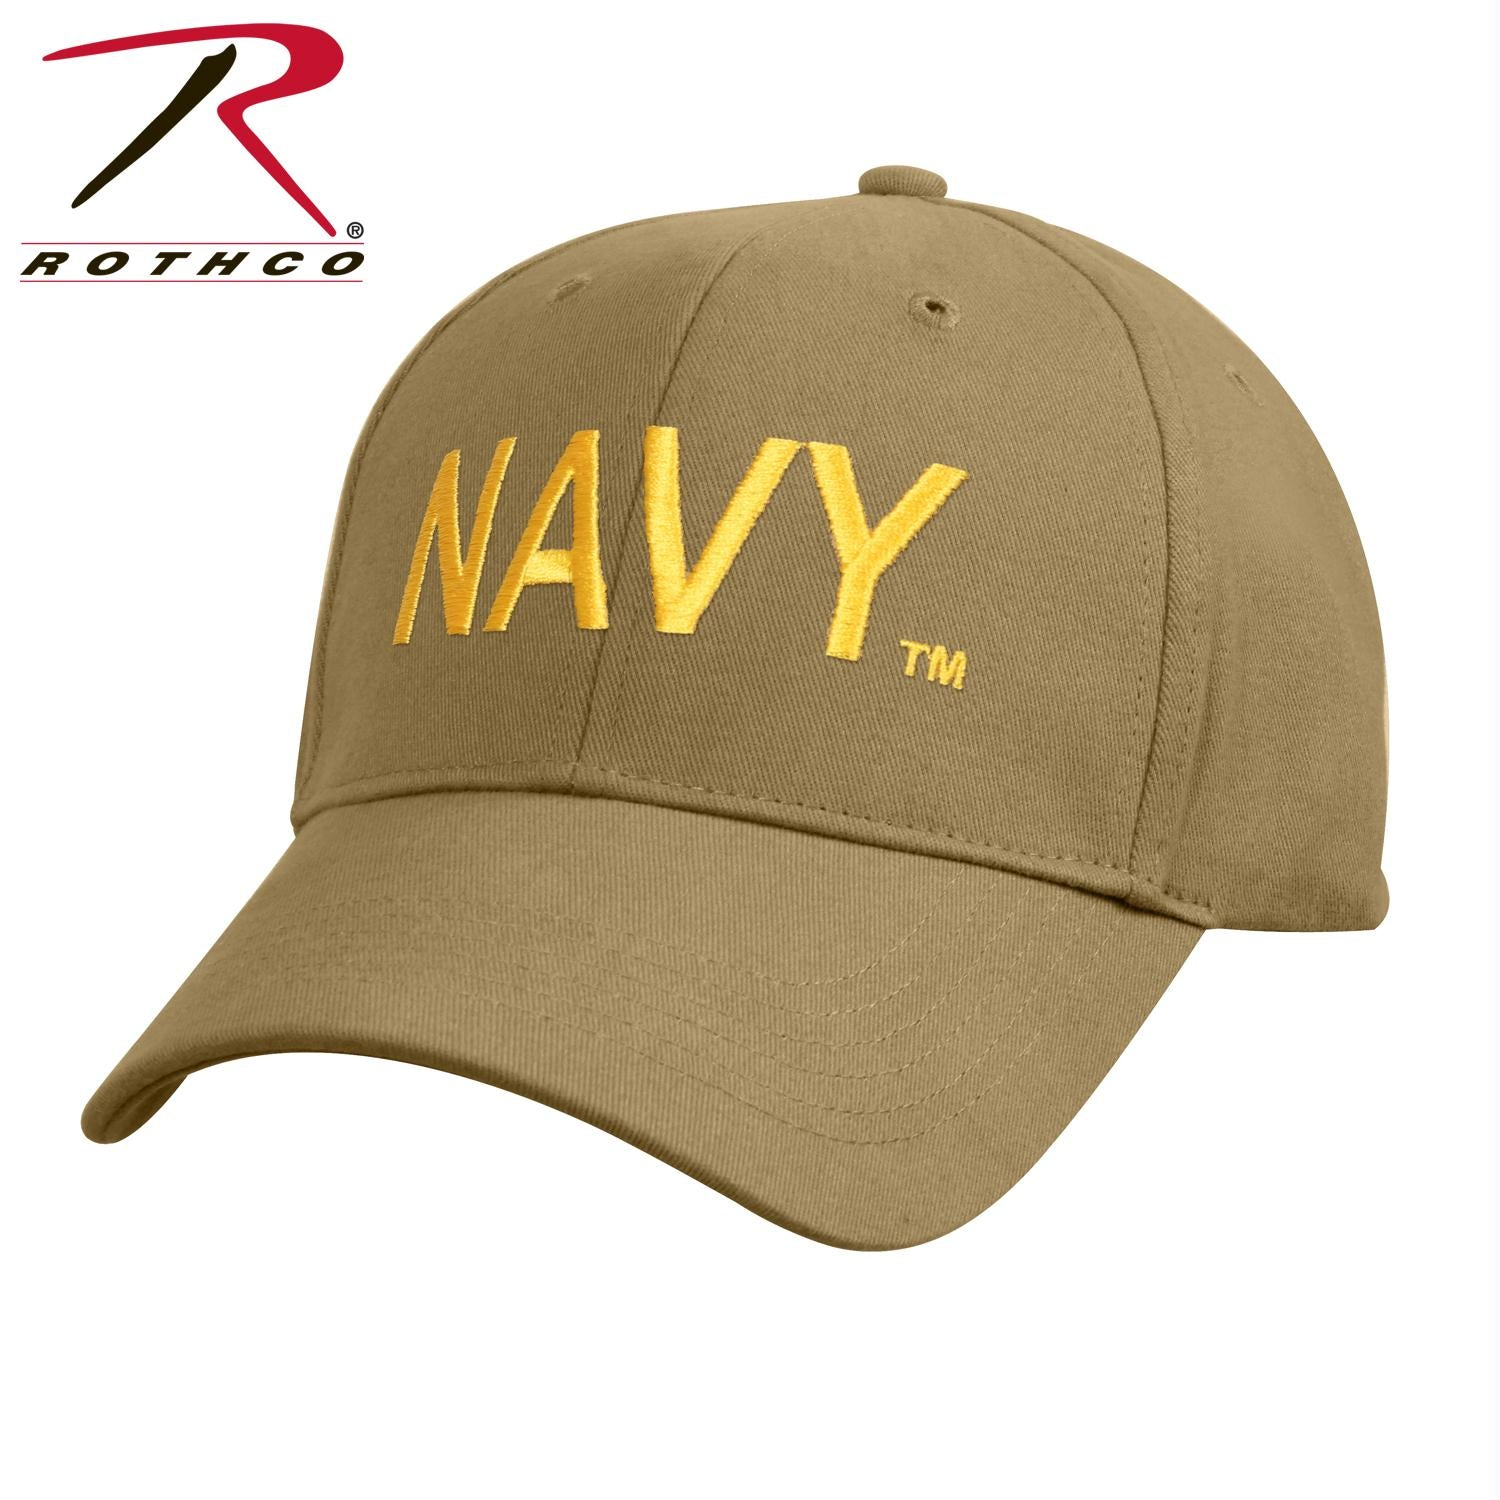 Rothco Low Profile Navy Cap - Coyote - Coyote Brown / One Size